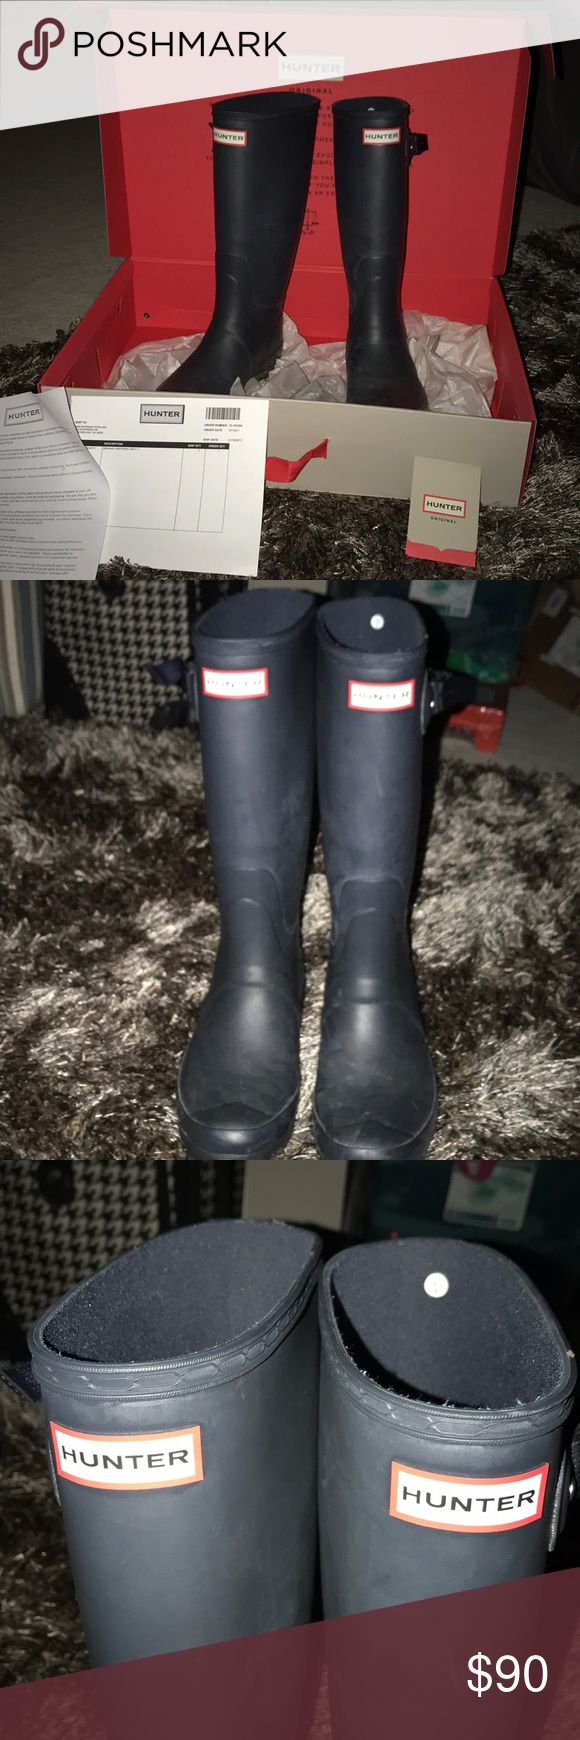 Navy Hunter wide calf boots! Purchased about 5 months ago!!! These are wide calf Huntress hunter boots!! Adjustable sides! Will clean bottoms and boots before shipment! Will come with original box etc! Color is coming up dark in pics but they are navy! Hunter Boots Other